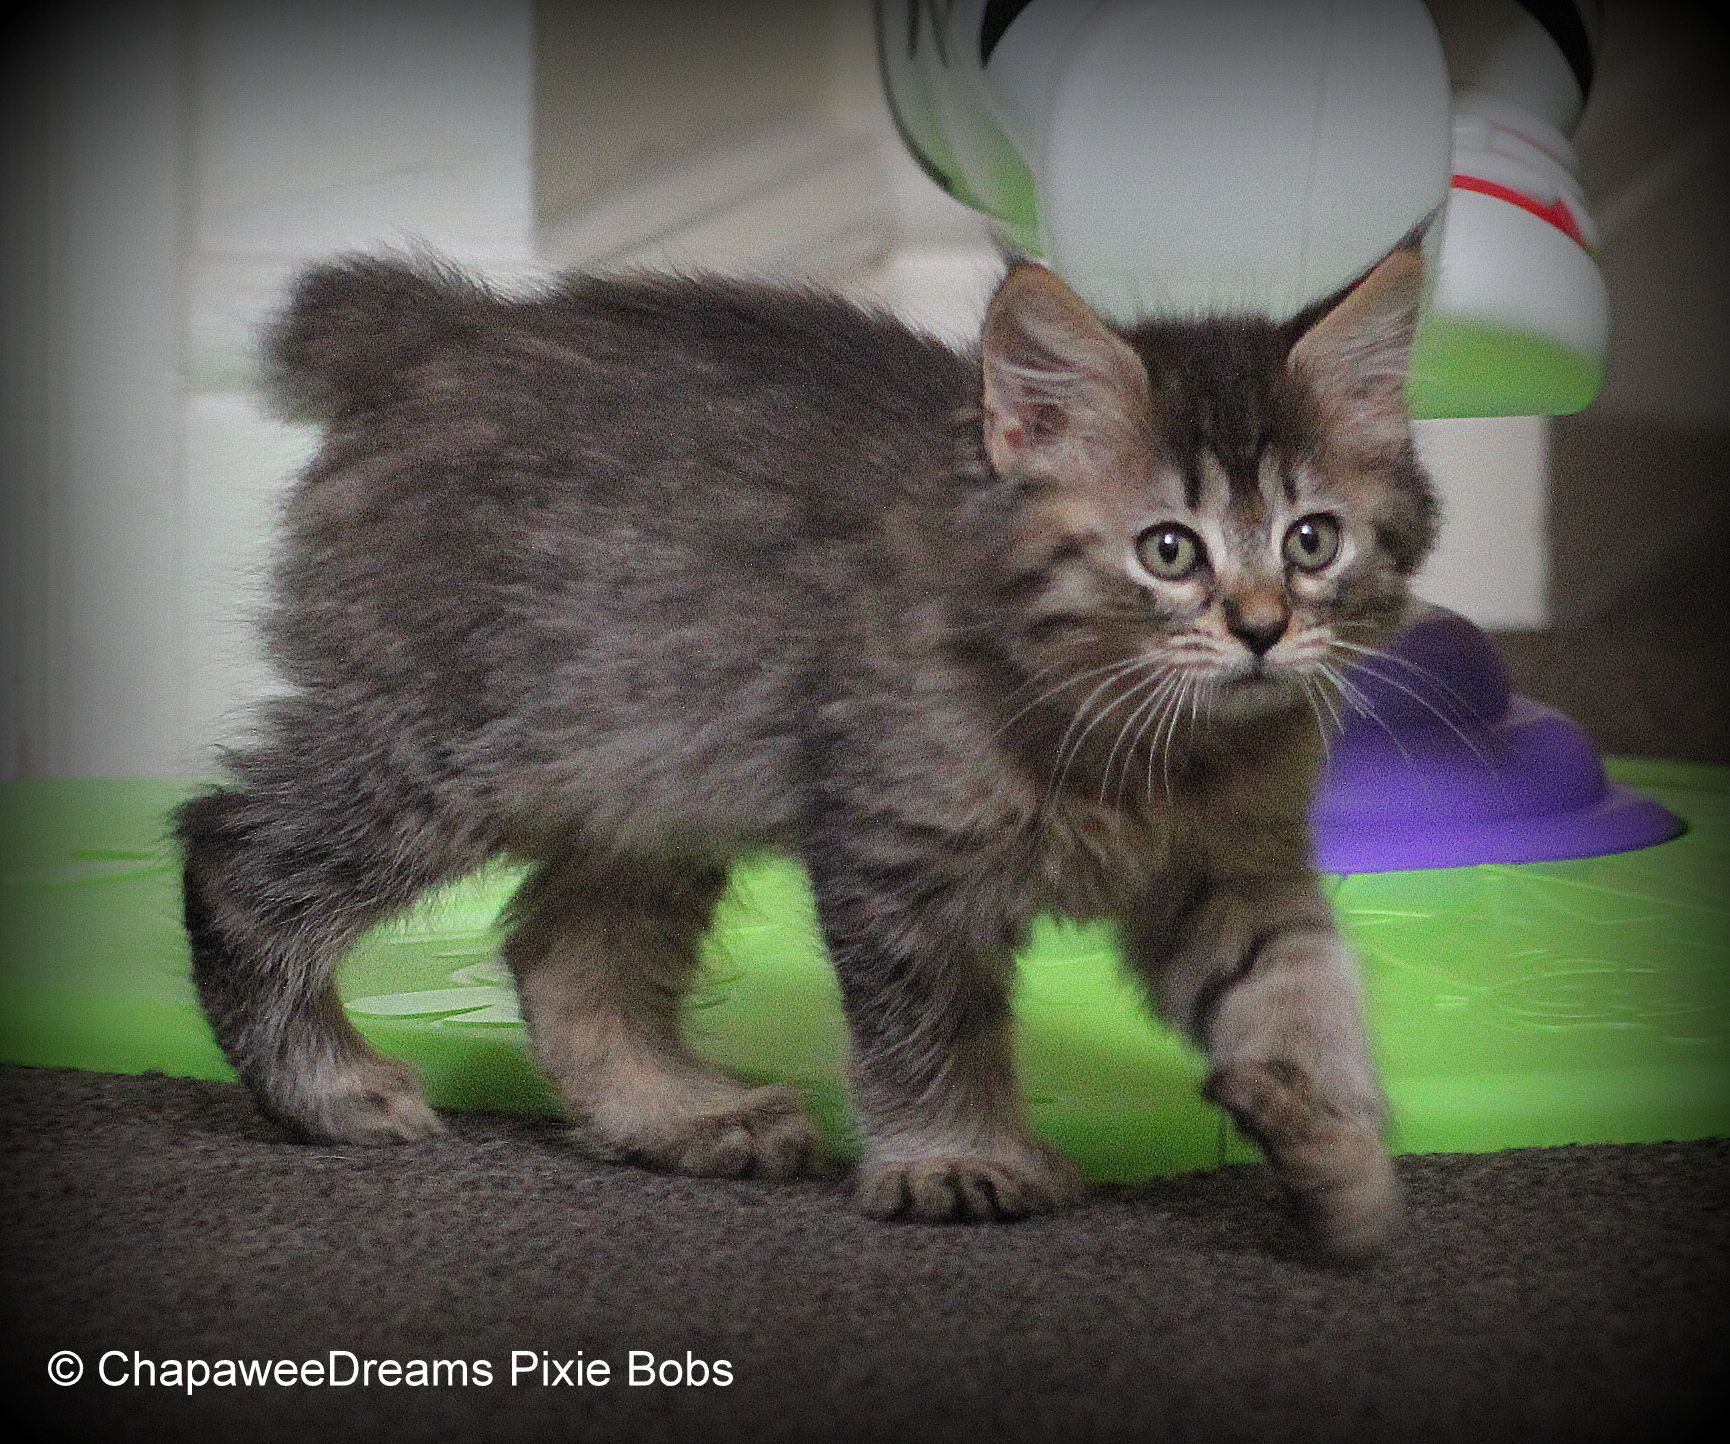 ChapaweeDreams Pixie Bobs Kittens want Pinterest